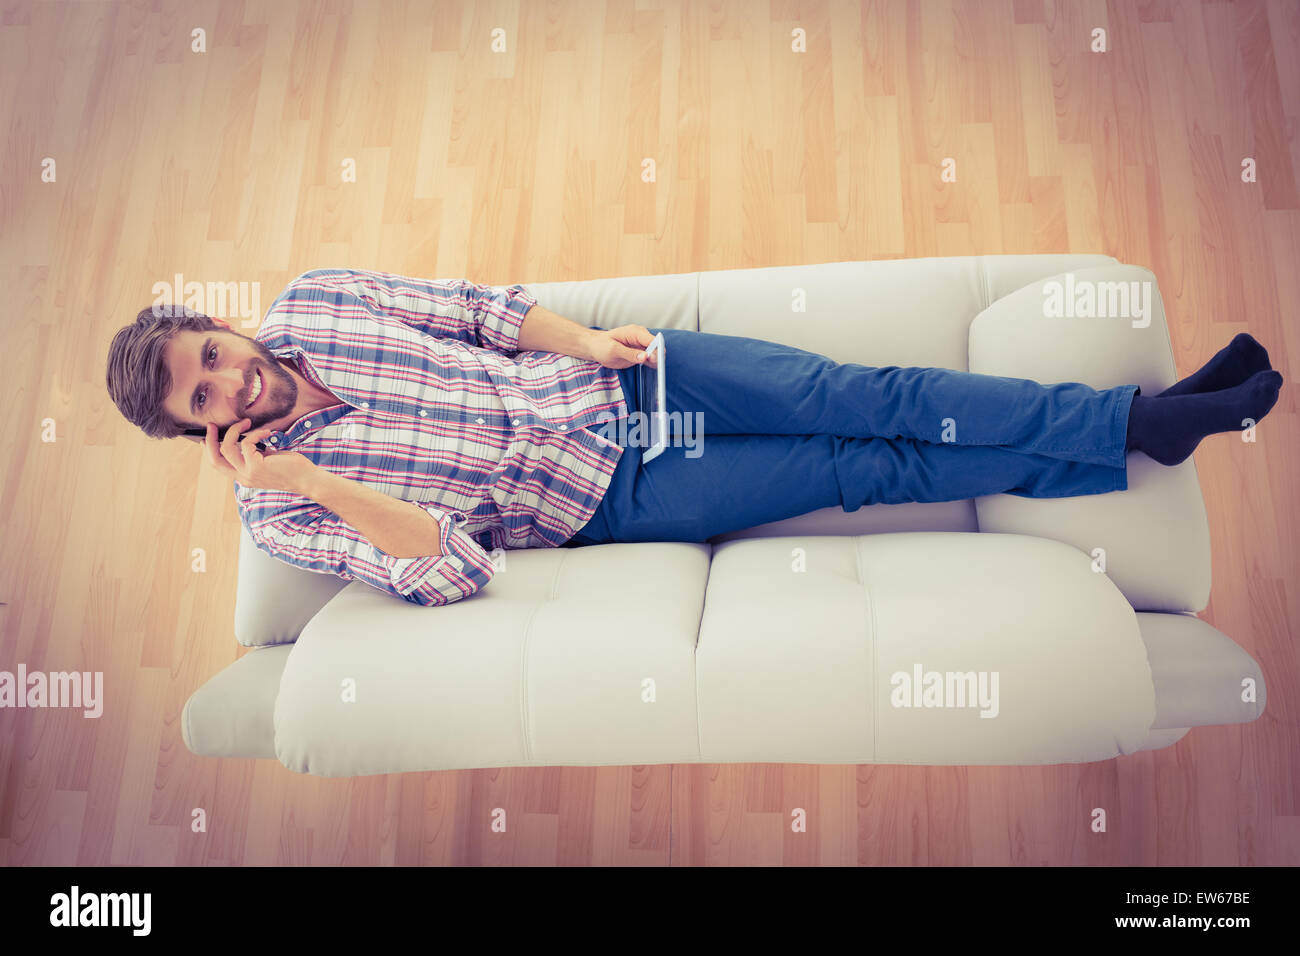 Businessman on the phone extended on the sofa - Stock Image